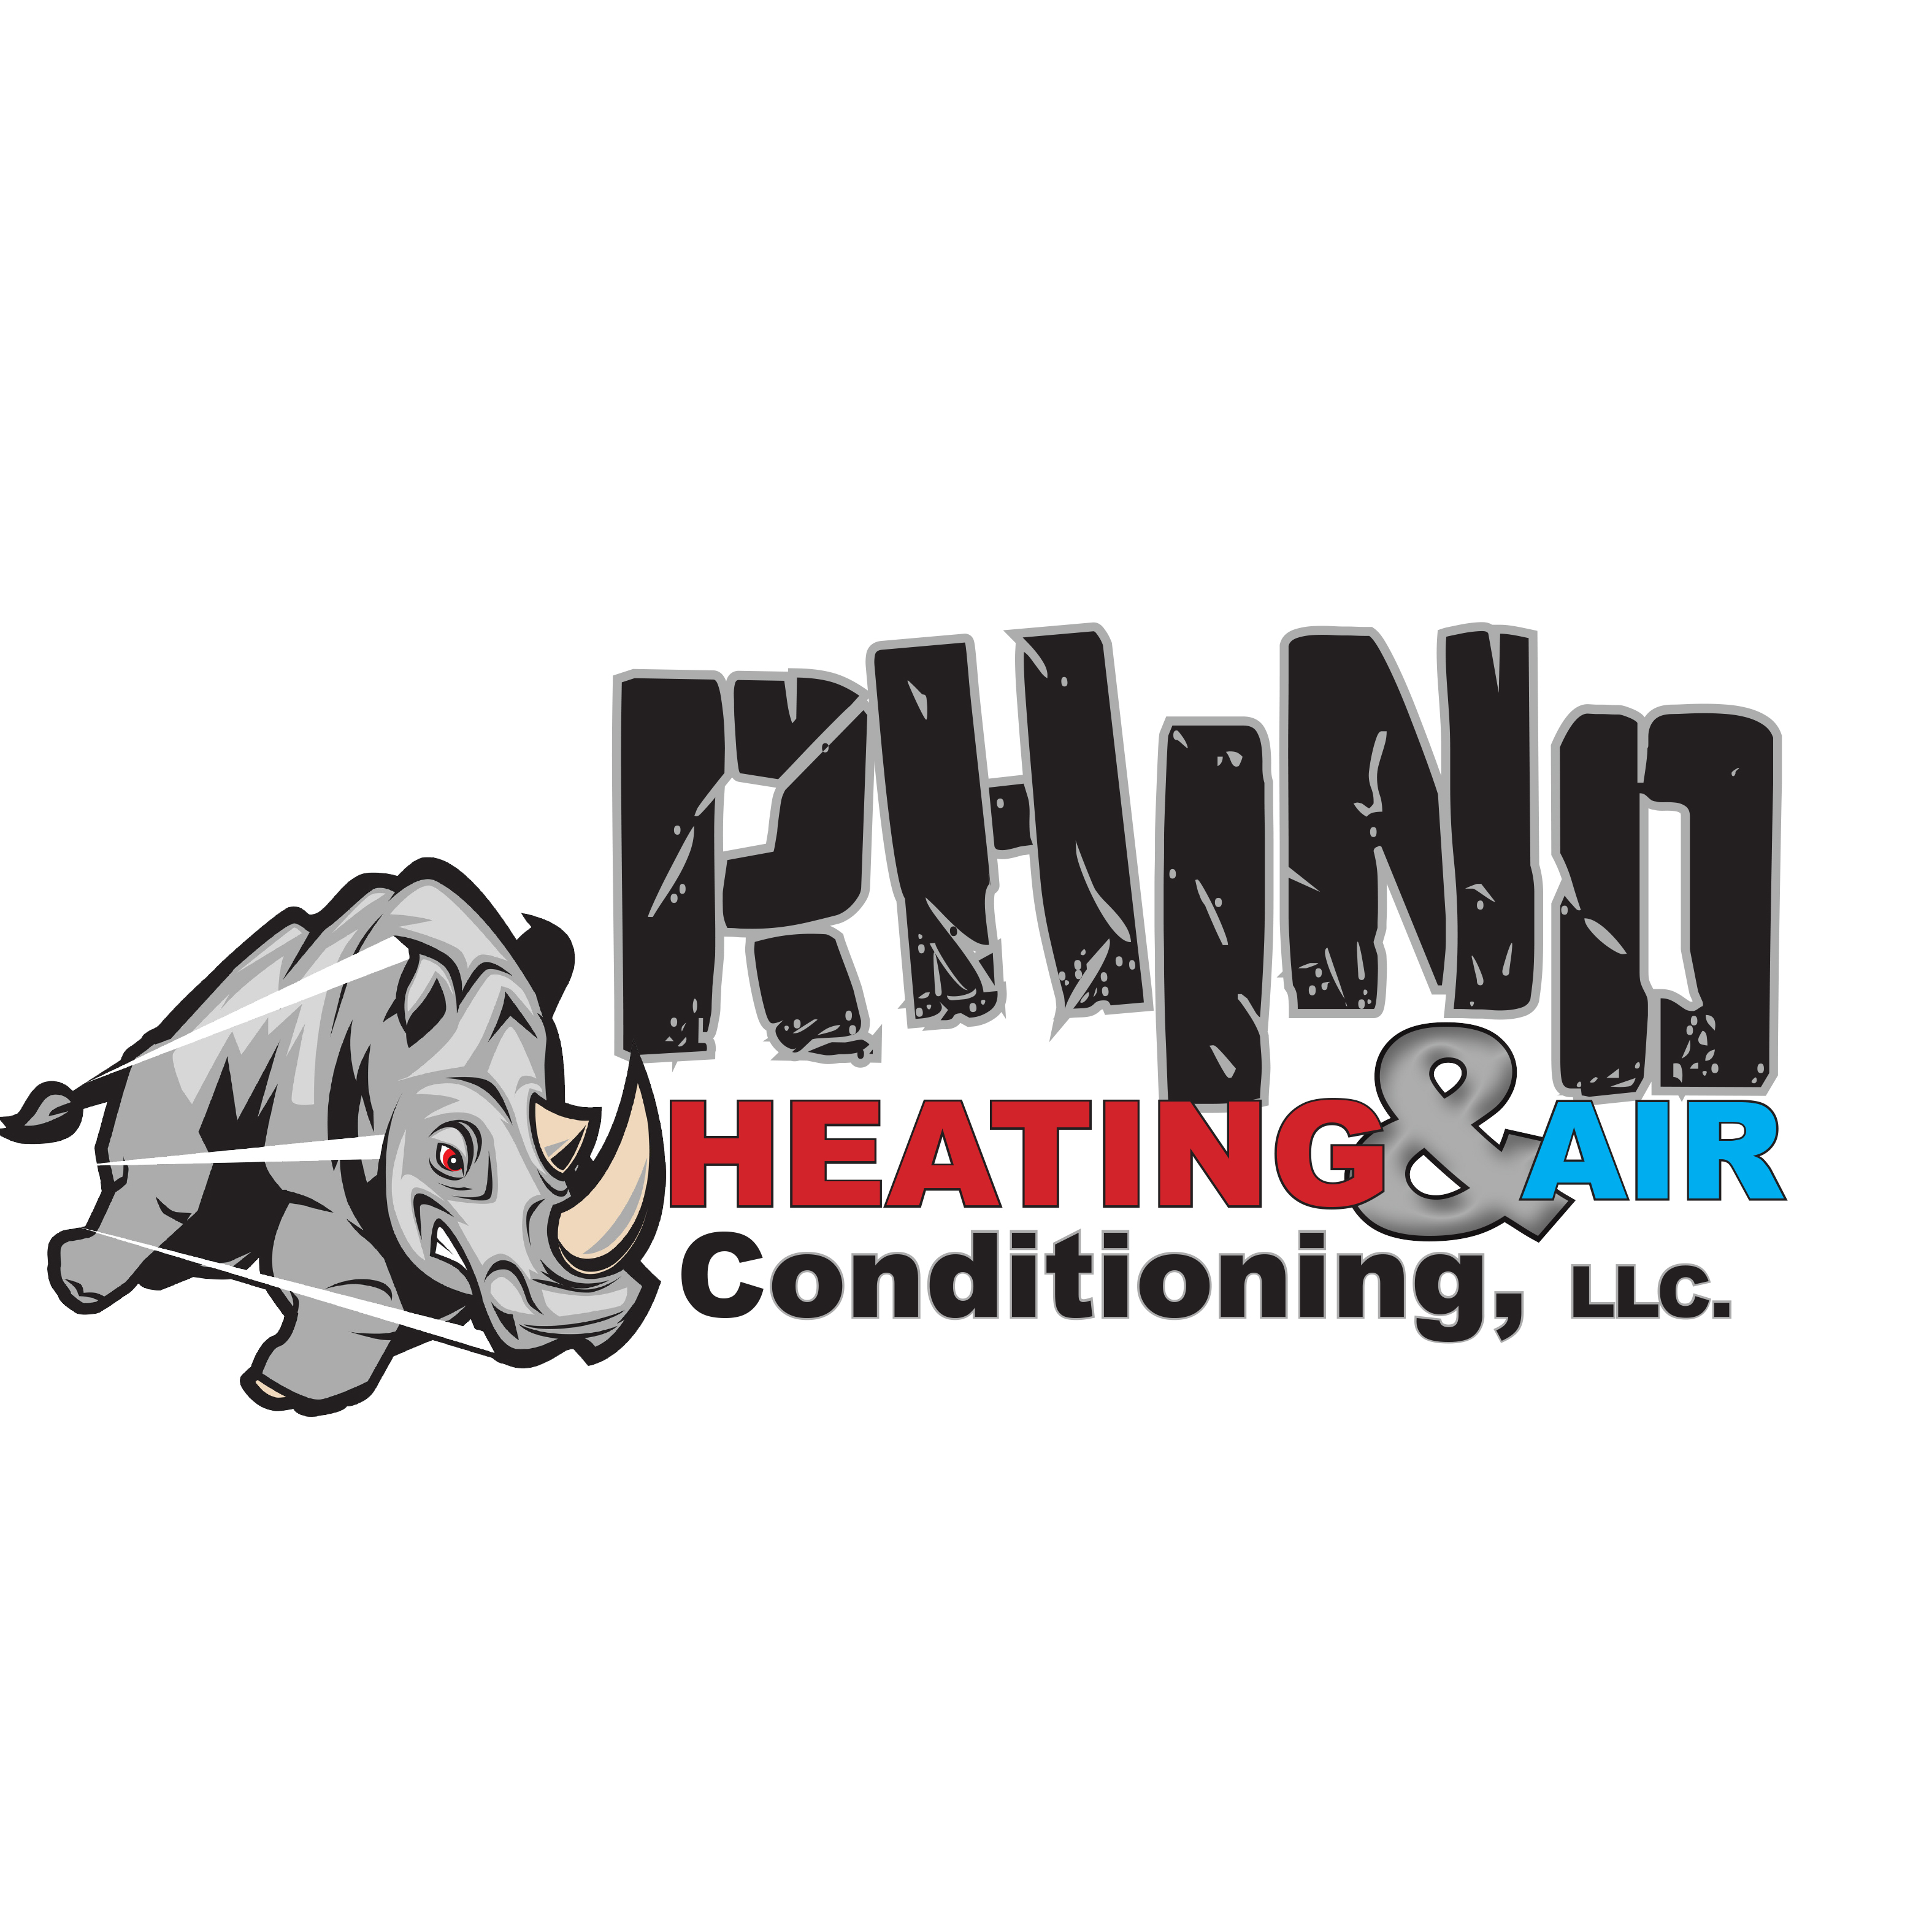 Rhino Heating and Air Conditioning, LLC - Moore, OK 73160 - (405)615-6177 | ShowMeLocal.com